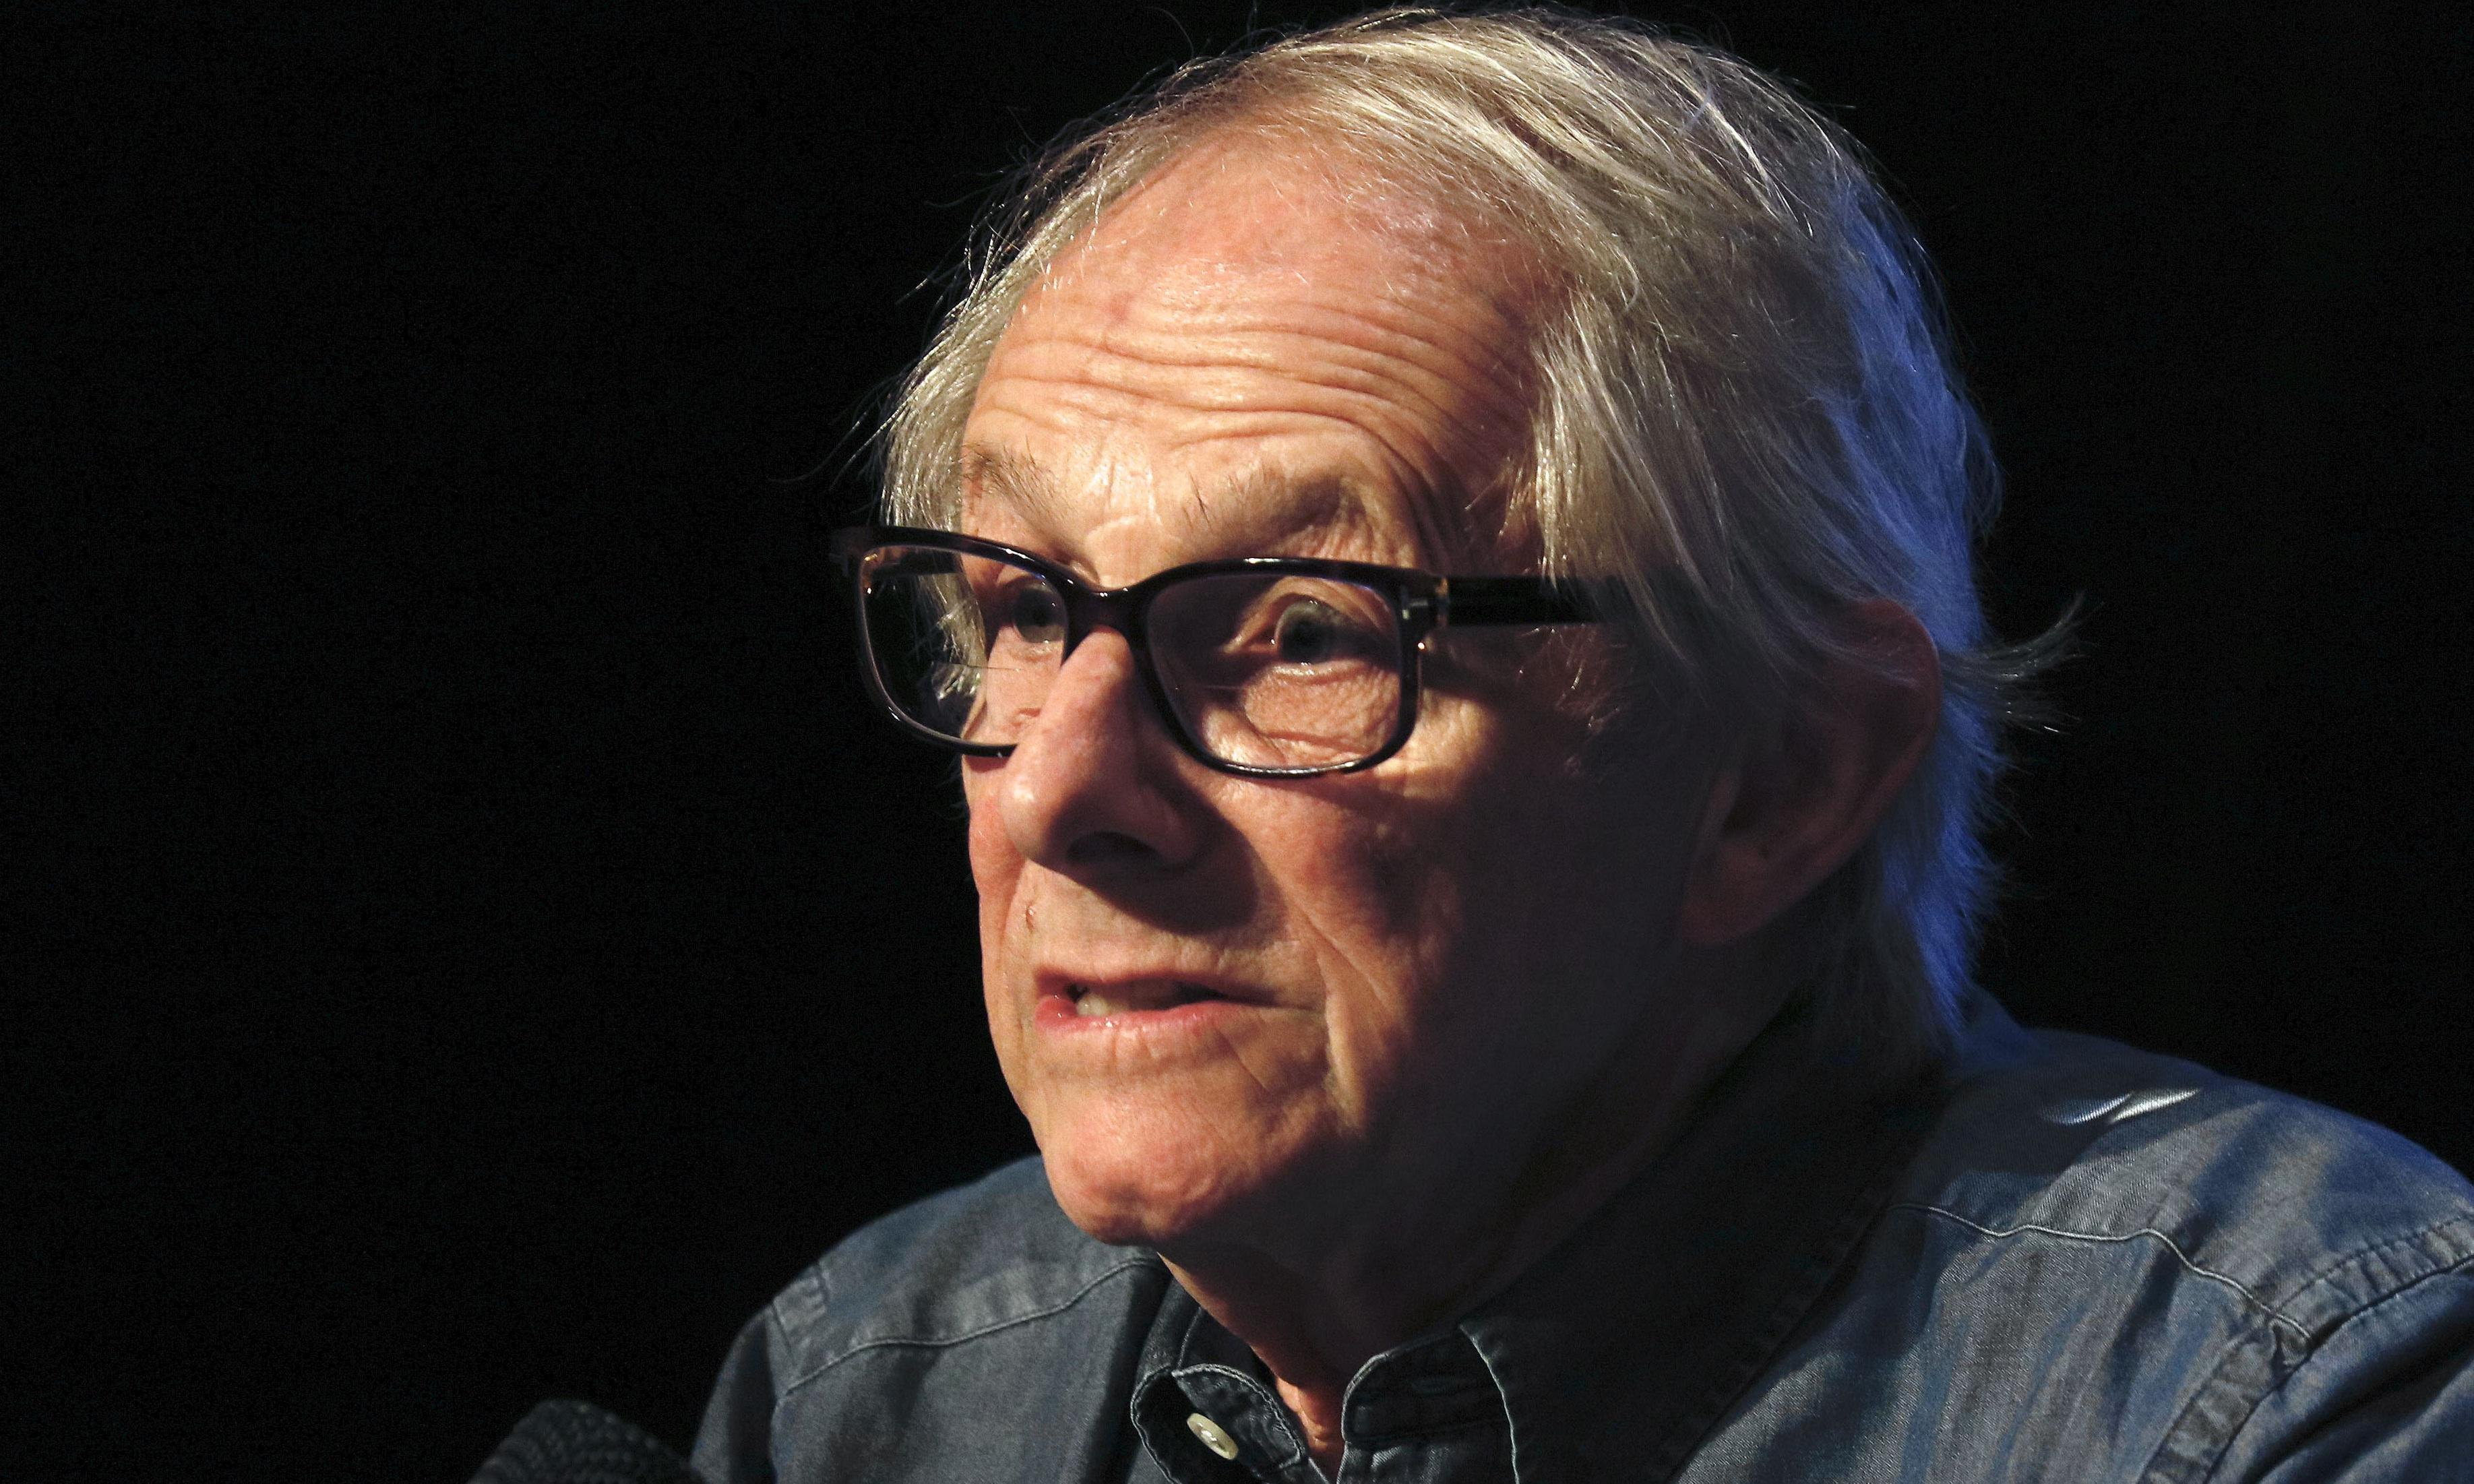 Superhero films are 'cynical exercise' to make profits for corporations – Ken Loach